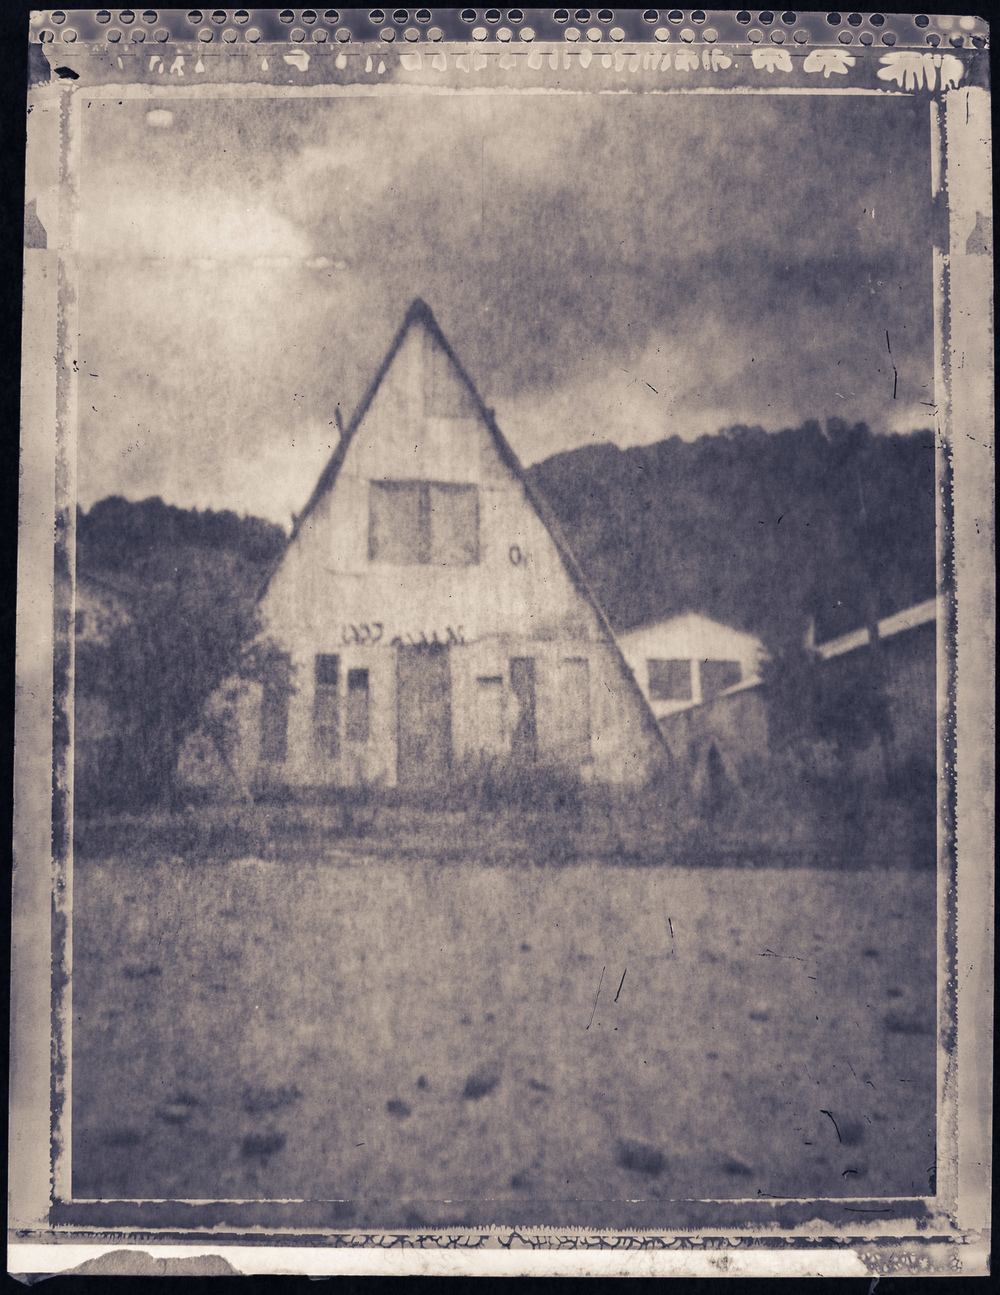 William  Bossen - Pinhole Images from the World